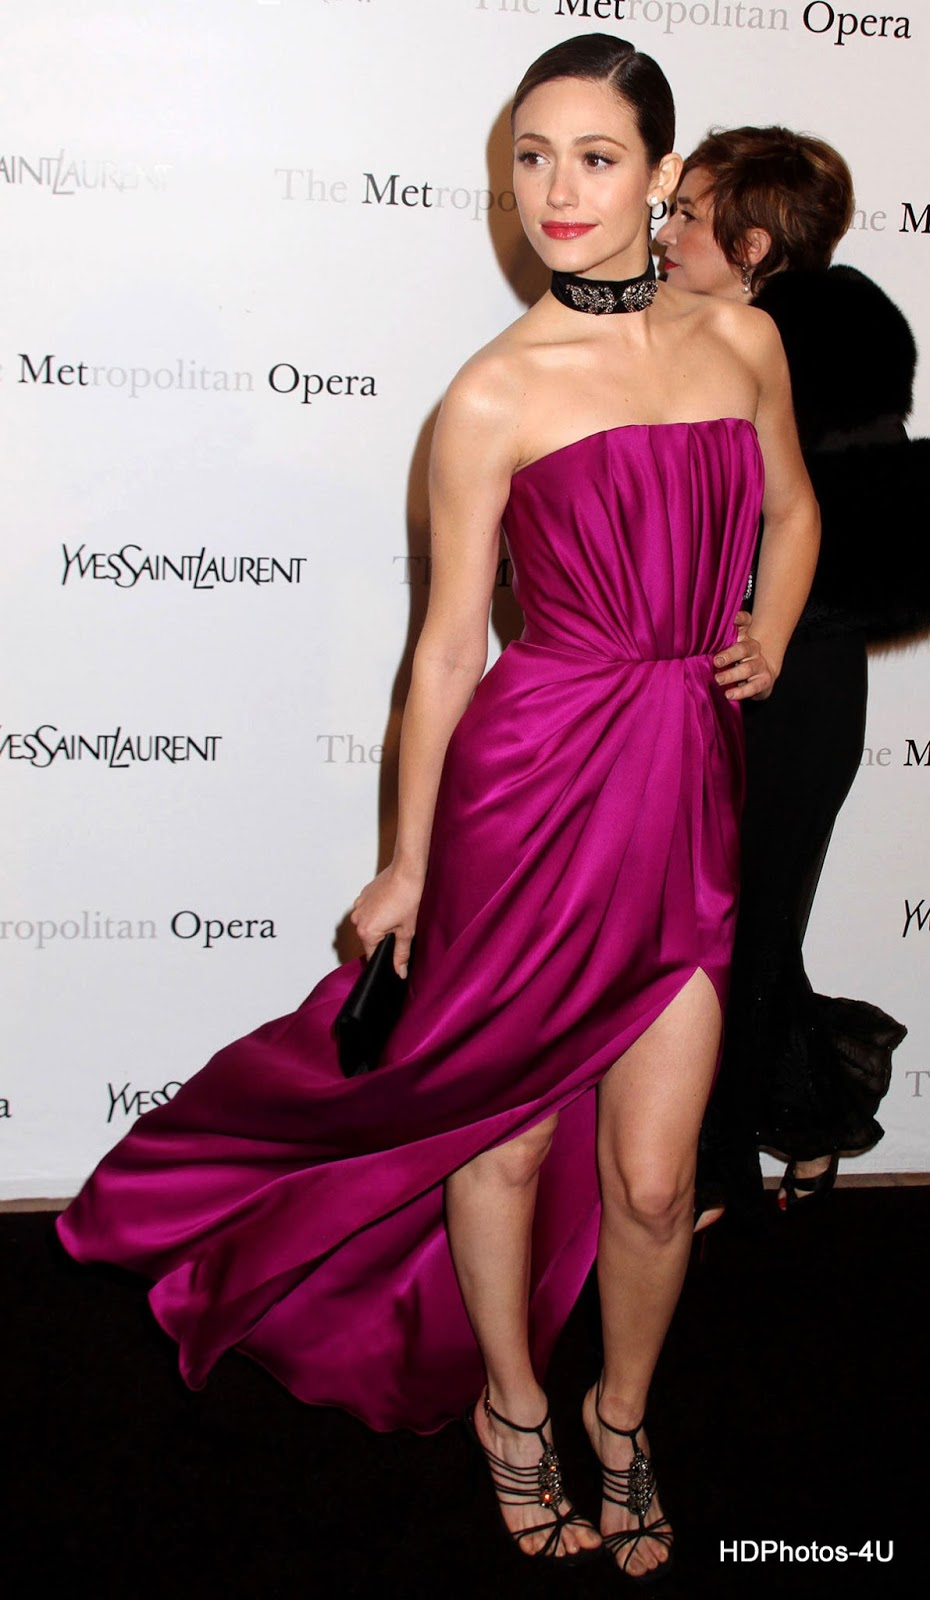 4K Photos of Emmy Rossum in Pink Dress at Metropolitan Opera Gala Premiere of Manon in New York